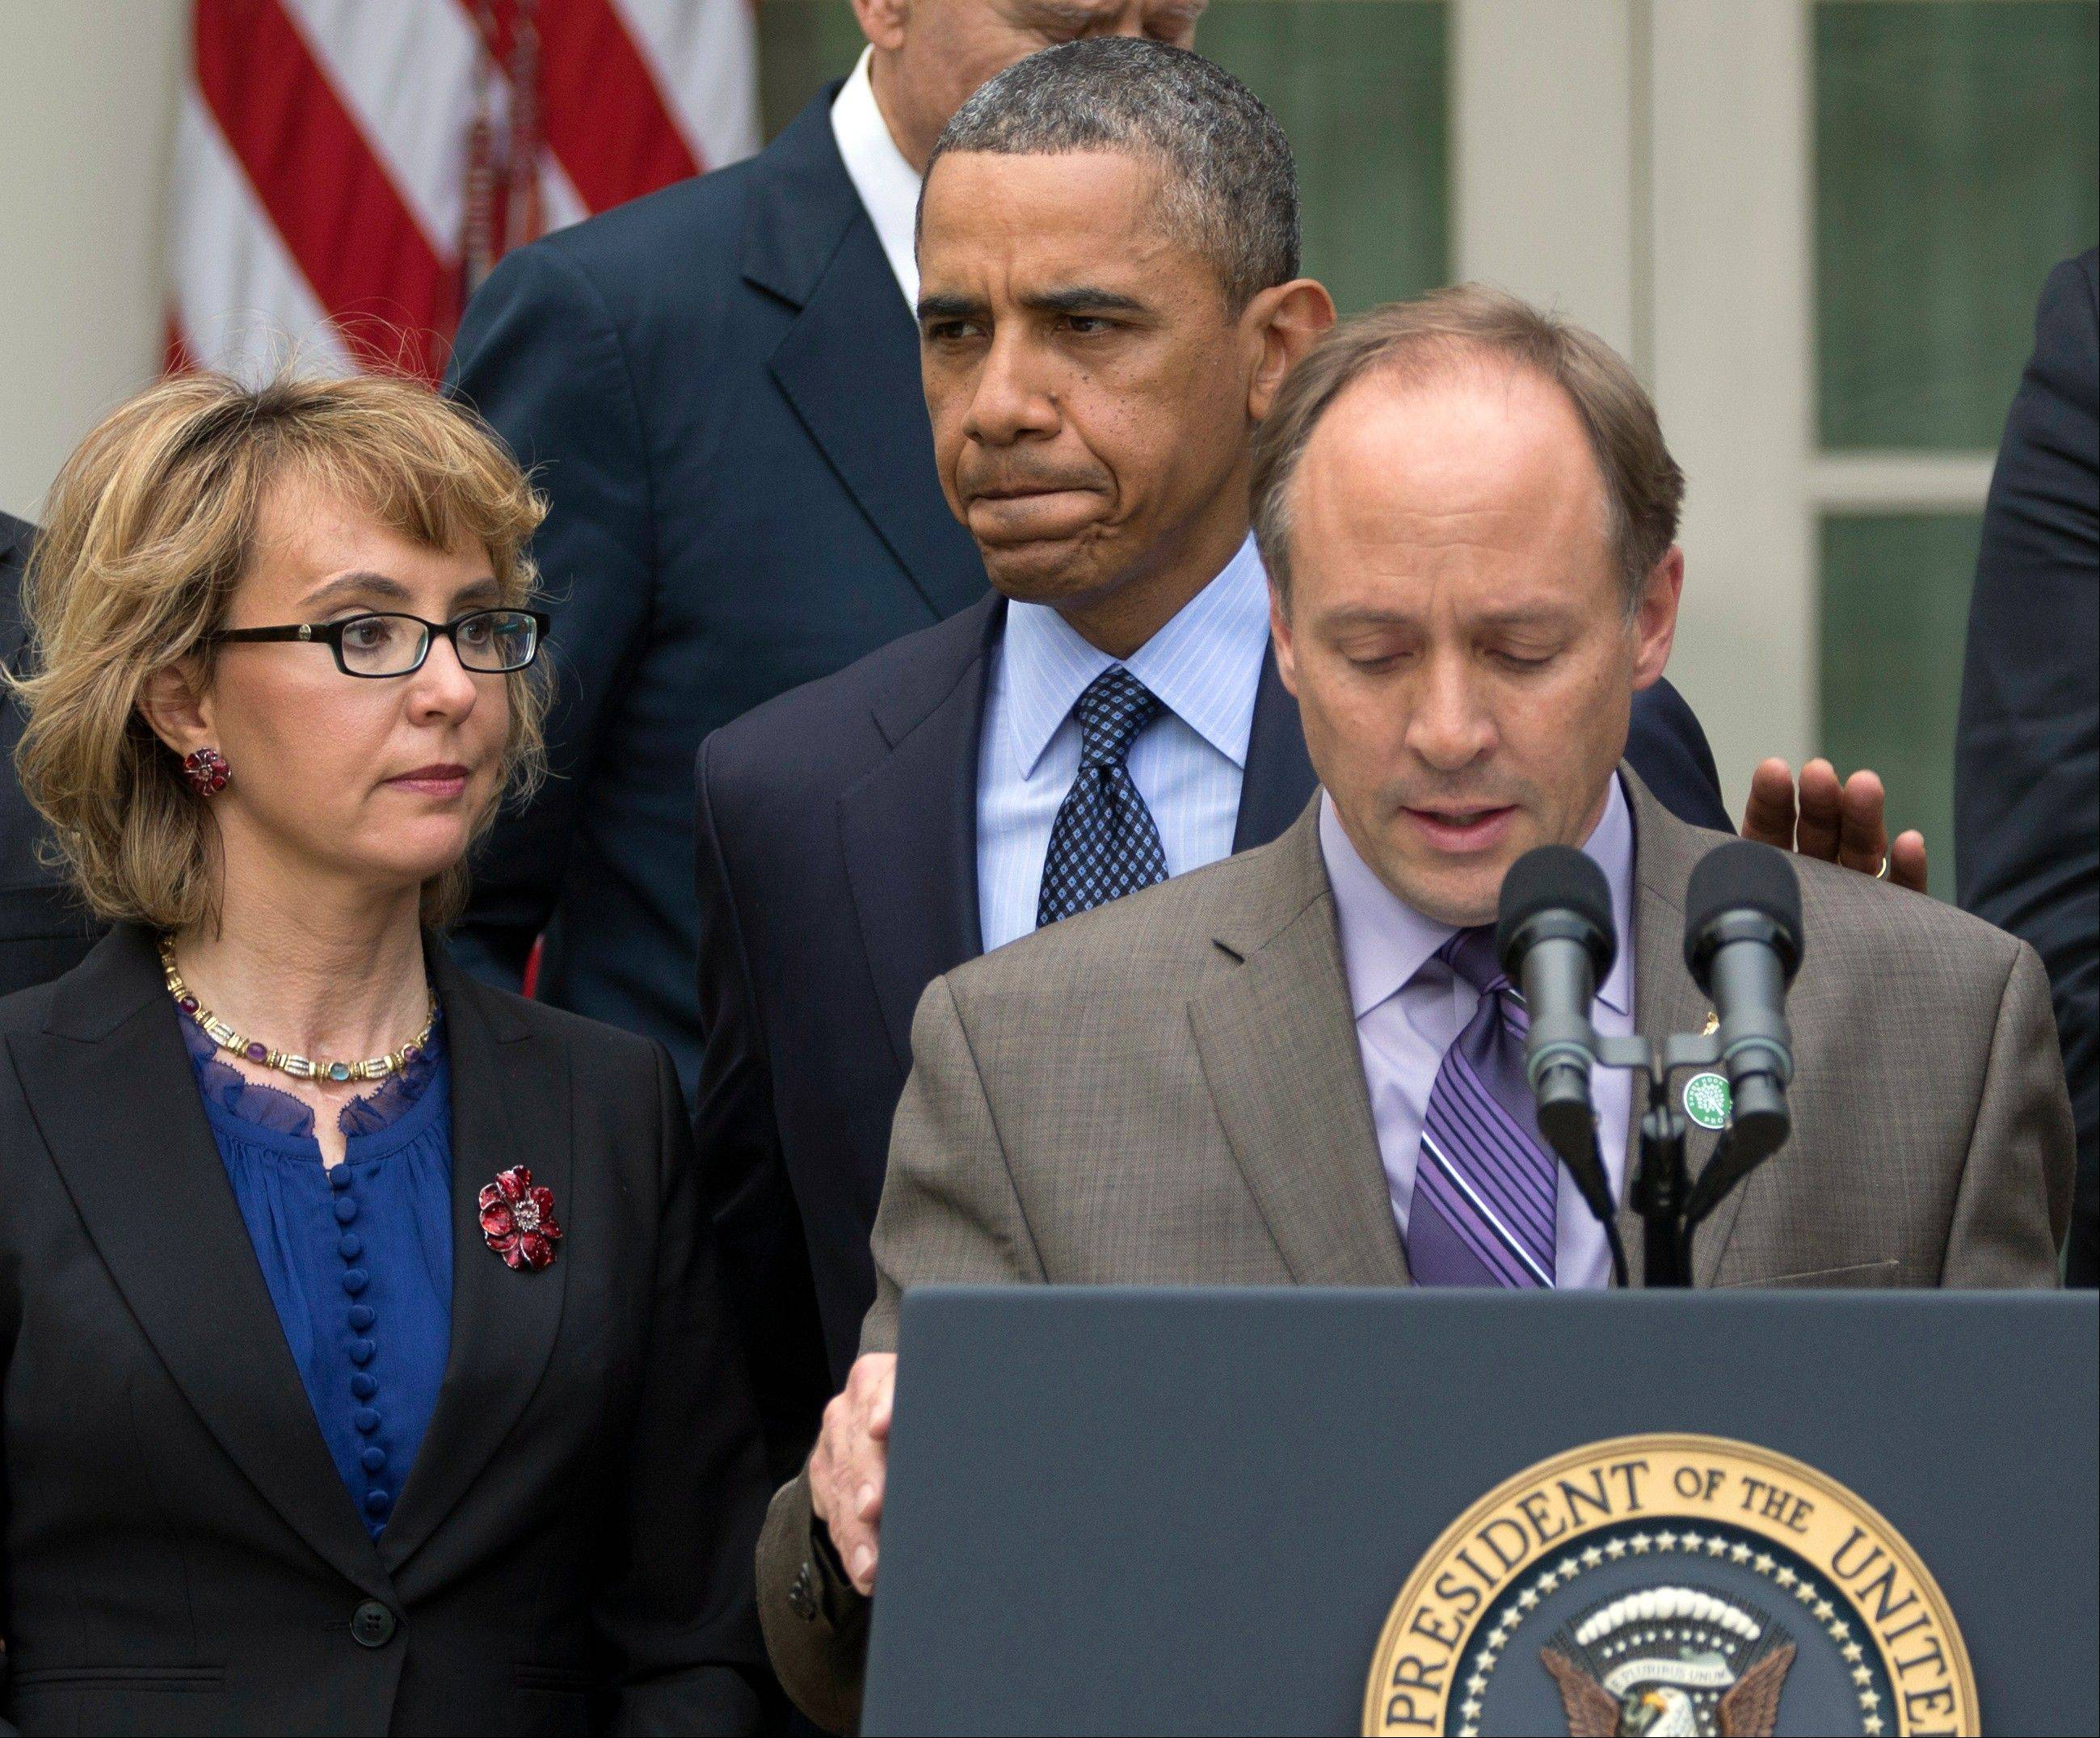 President Barack Obama arrives to participate in a news conference in the Rose Garden of the White House on Wednesday in Washington, about measures to reduce gun violence. With Obama is former Rep. Gabby Giffords, left, and Mark Barden, the father of Newtown shooting victim Daniel.